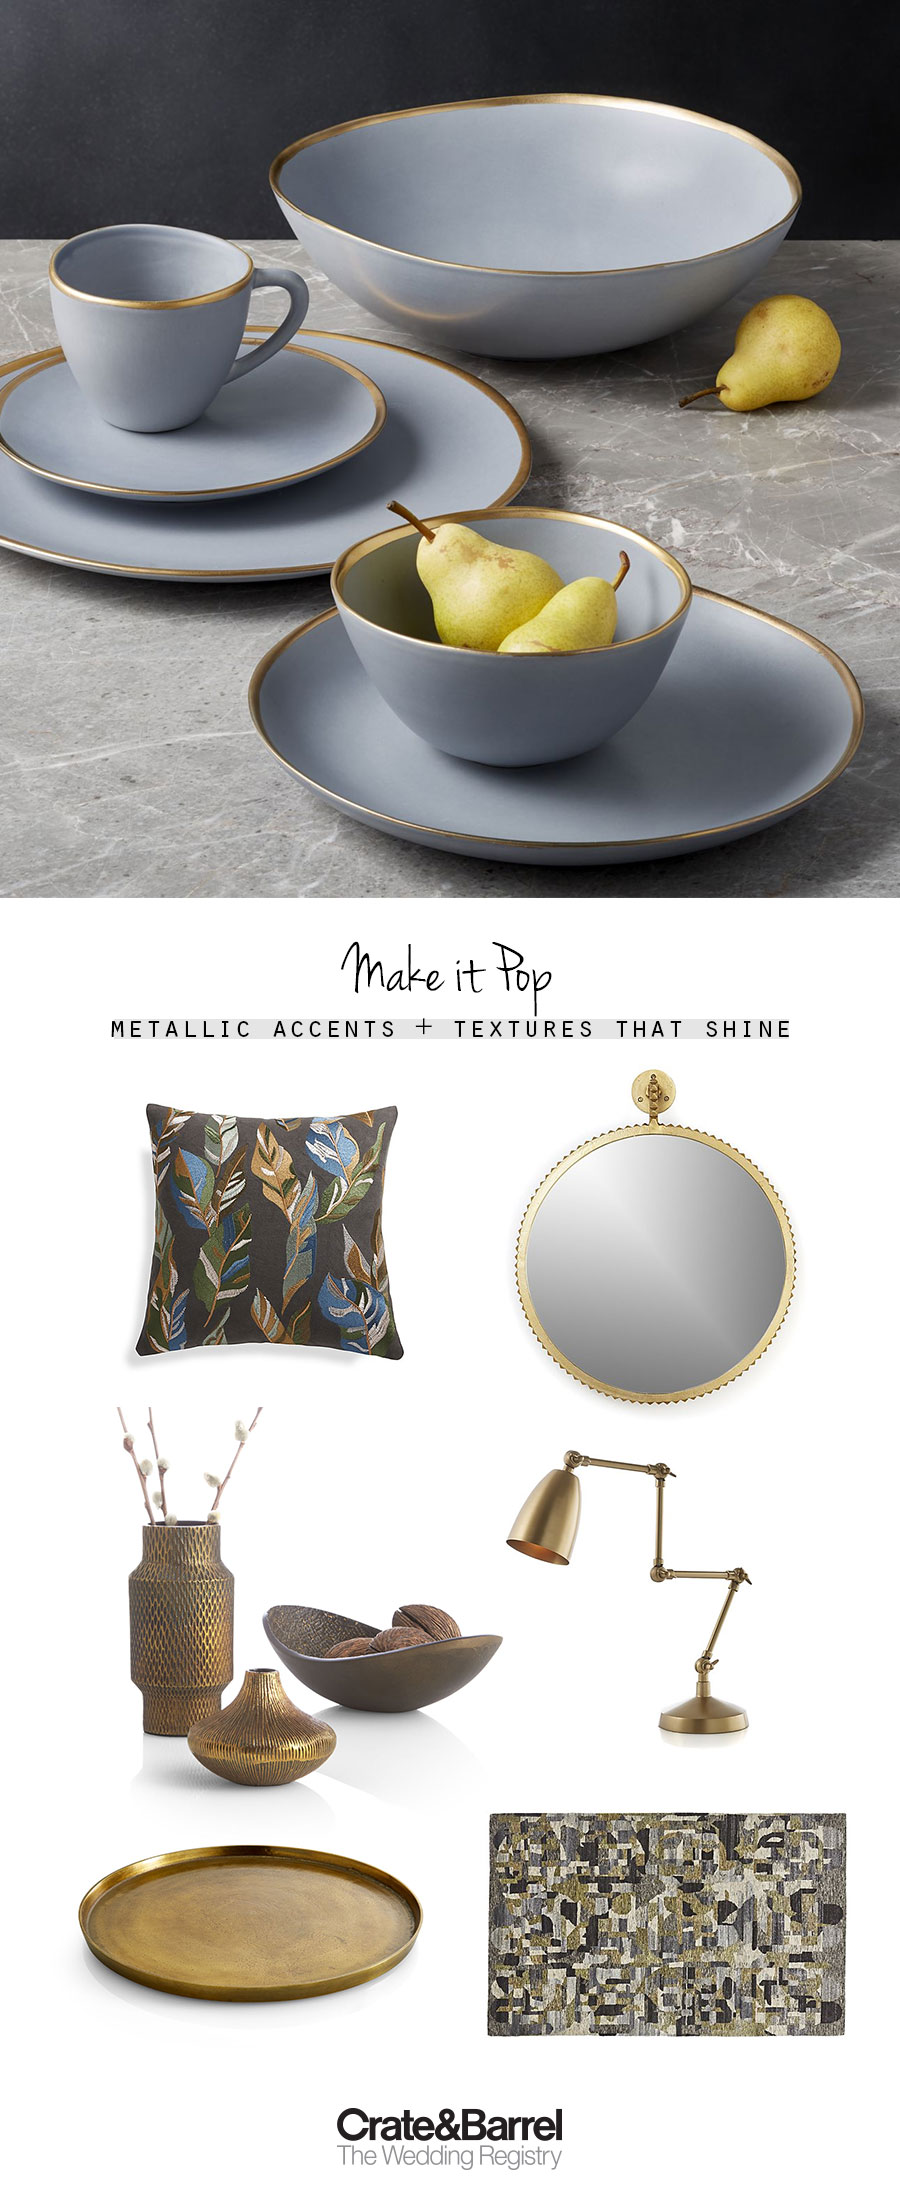 crate and barrel the wedding registry blue gold texture picks